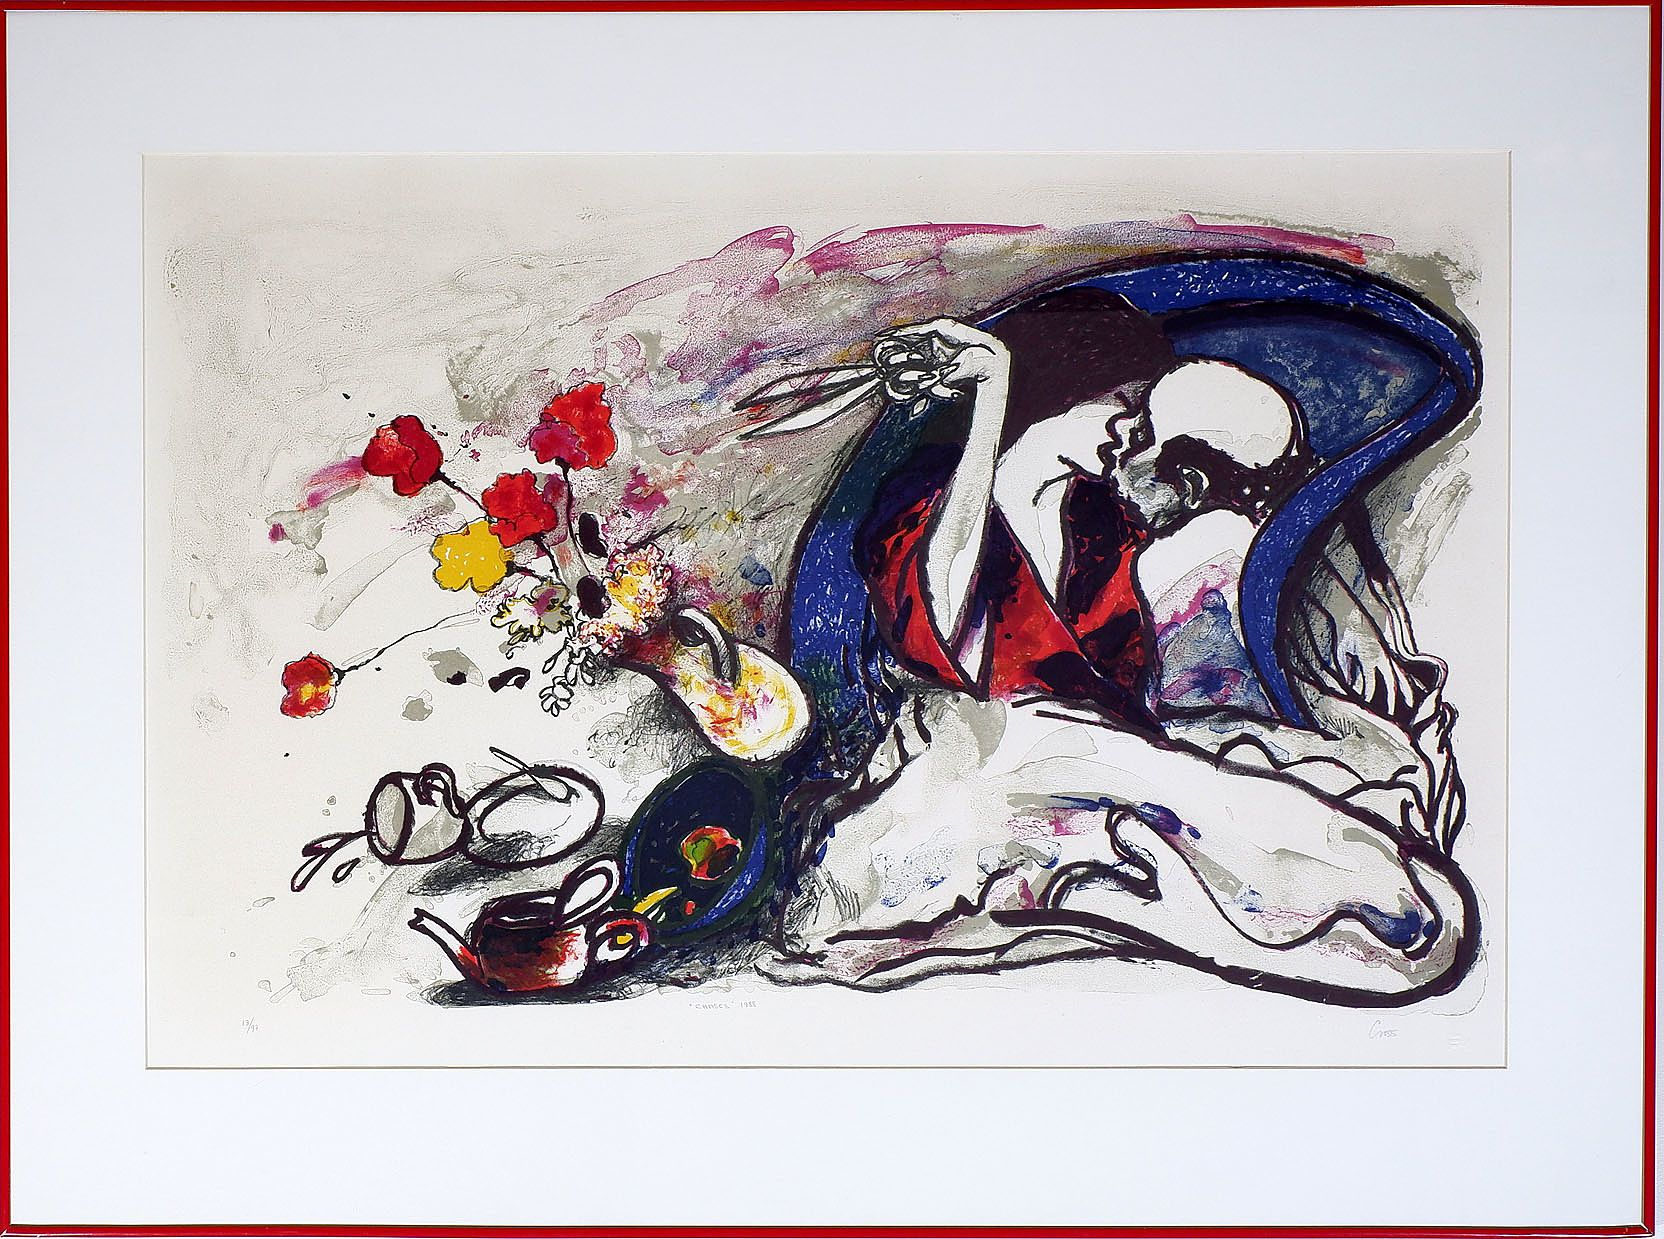 'Fred Cress (1938-2009), Chases 1988, Colour Lithograph Edition 13/97'